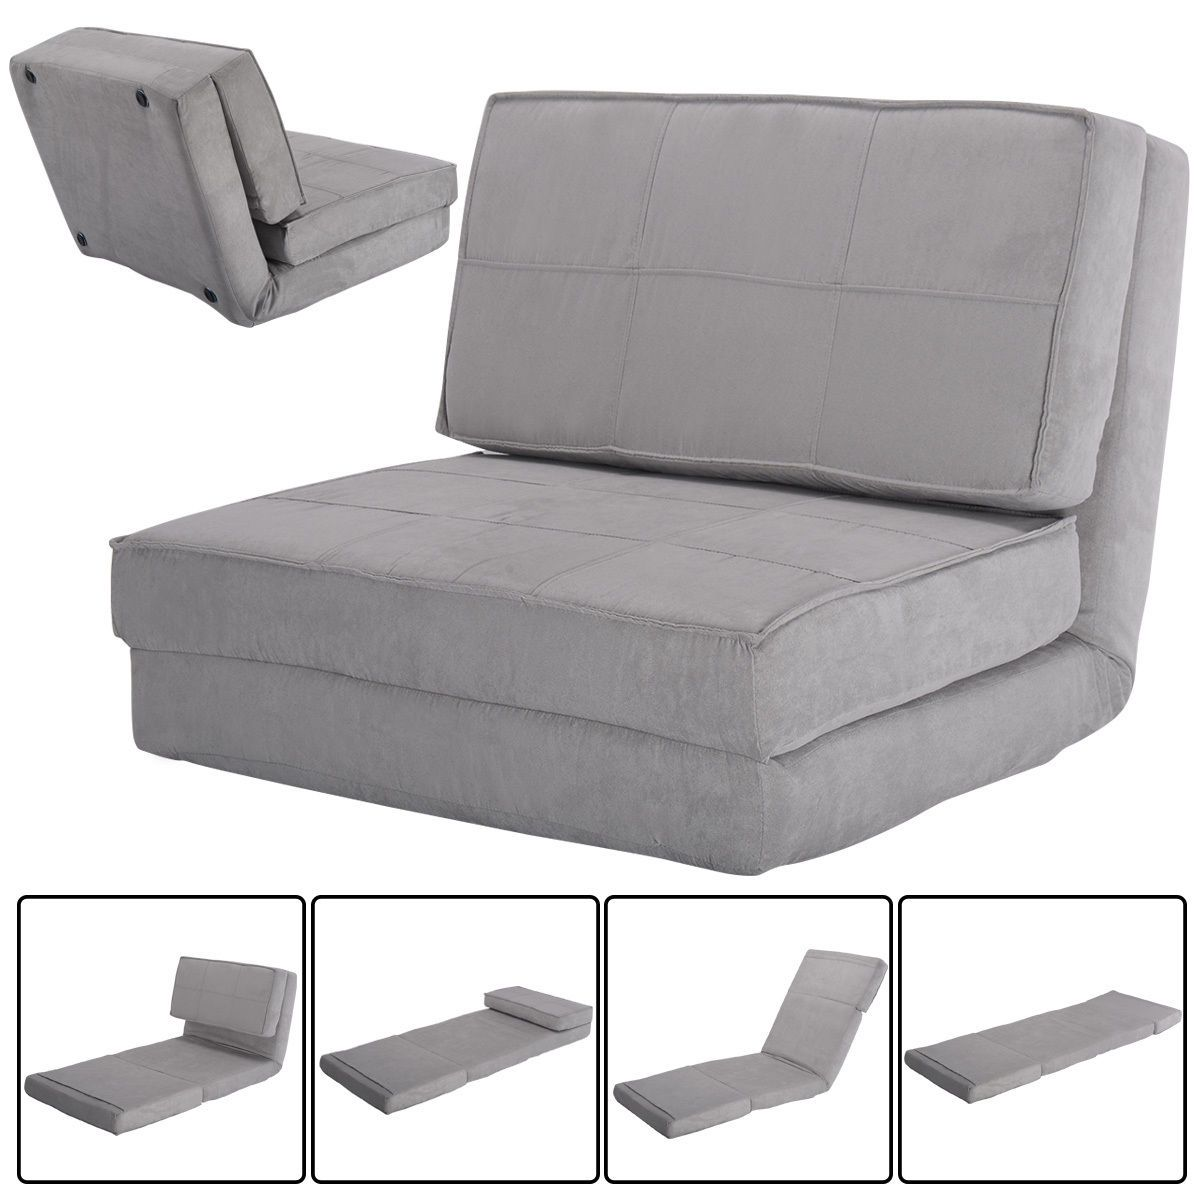 chair and go comfy comfortable bedroom sofa furniture single bed with unique outdoors mattress futon